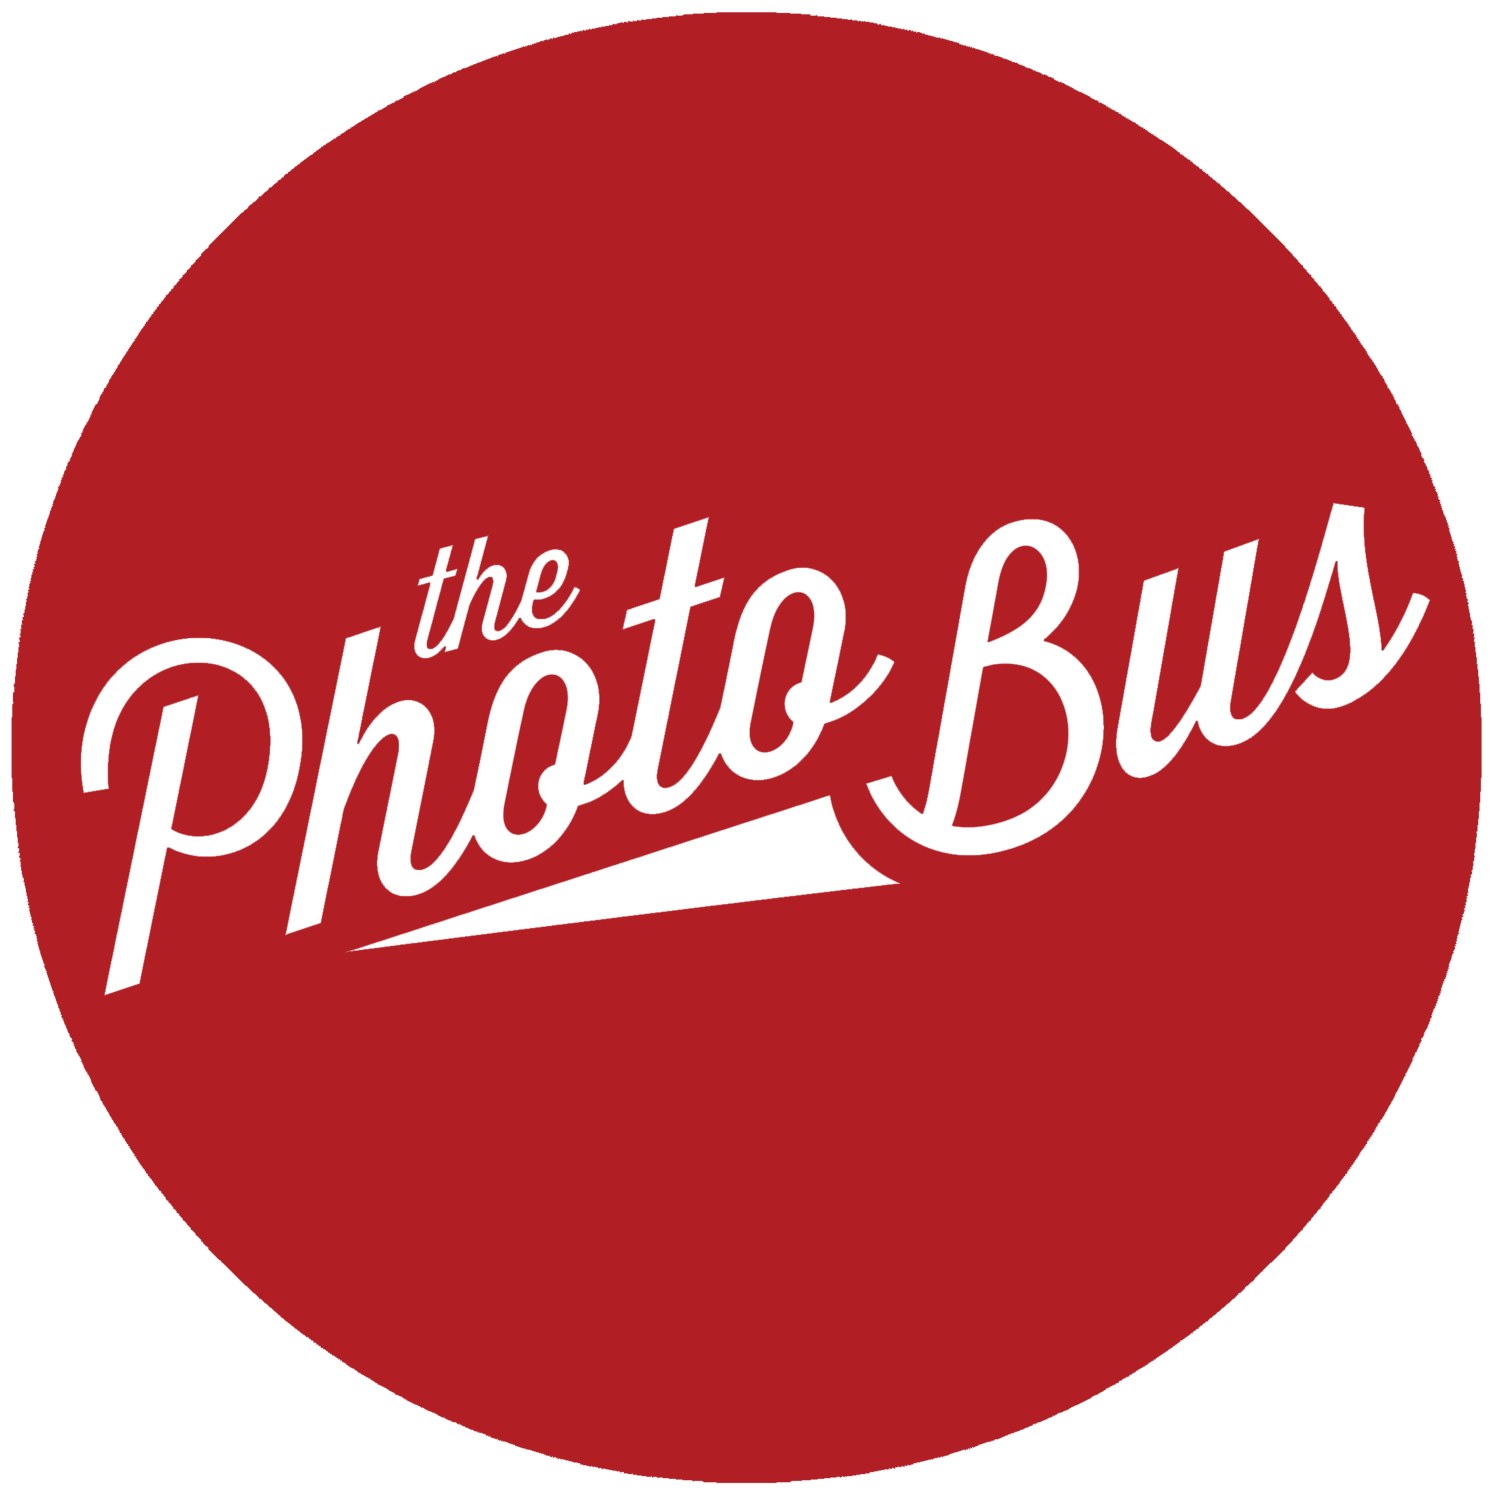 The Photo Bus Ep